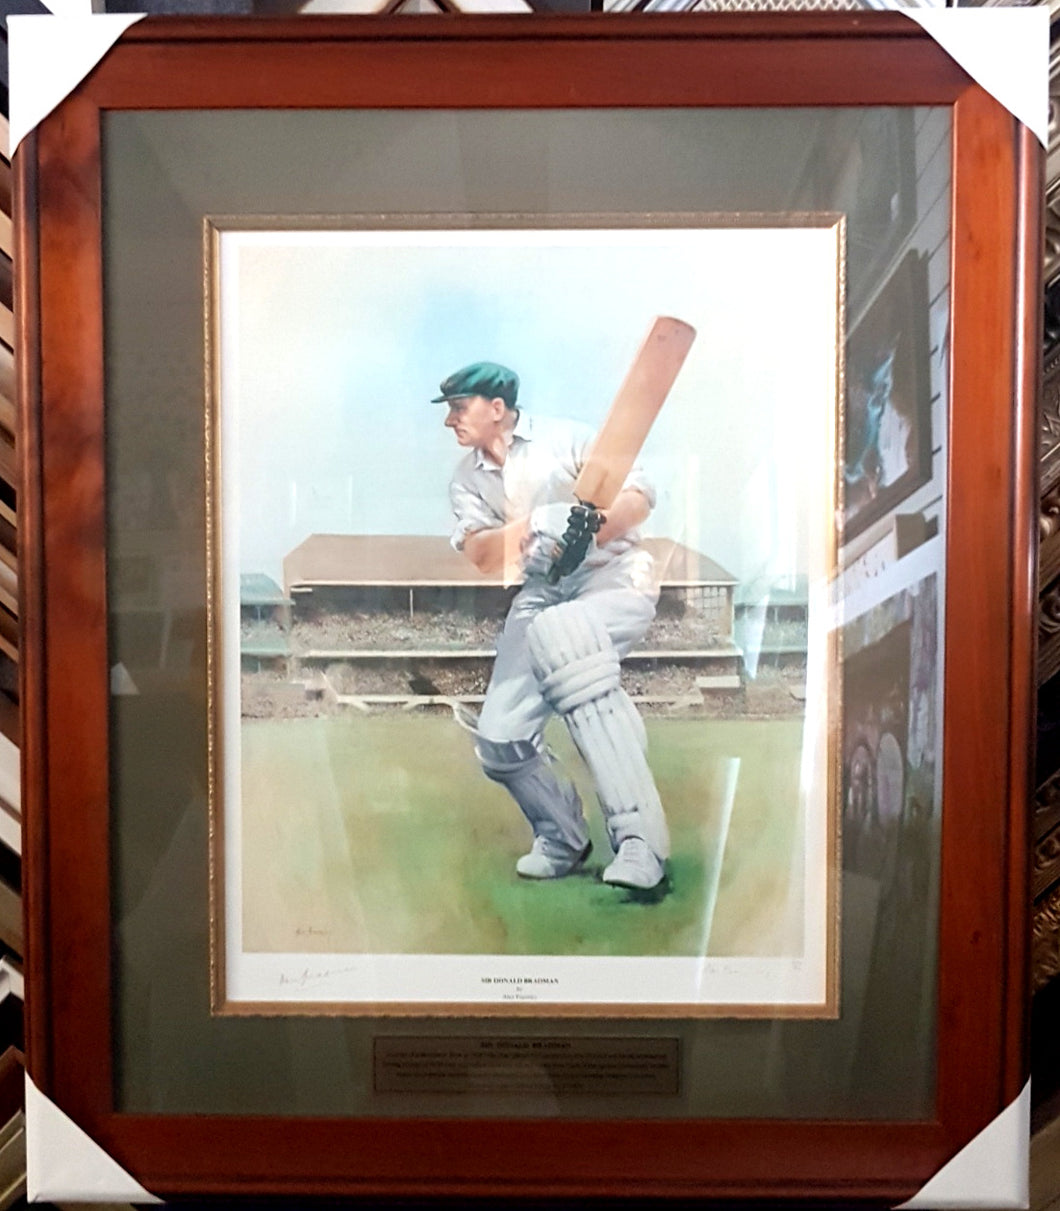 SIR DONALD BRADMAN SIGNED LTD ED ALAN FEARNLEY PRINT - Heroes Framing & Memorabilia